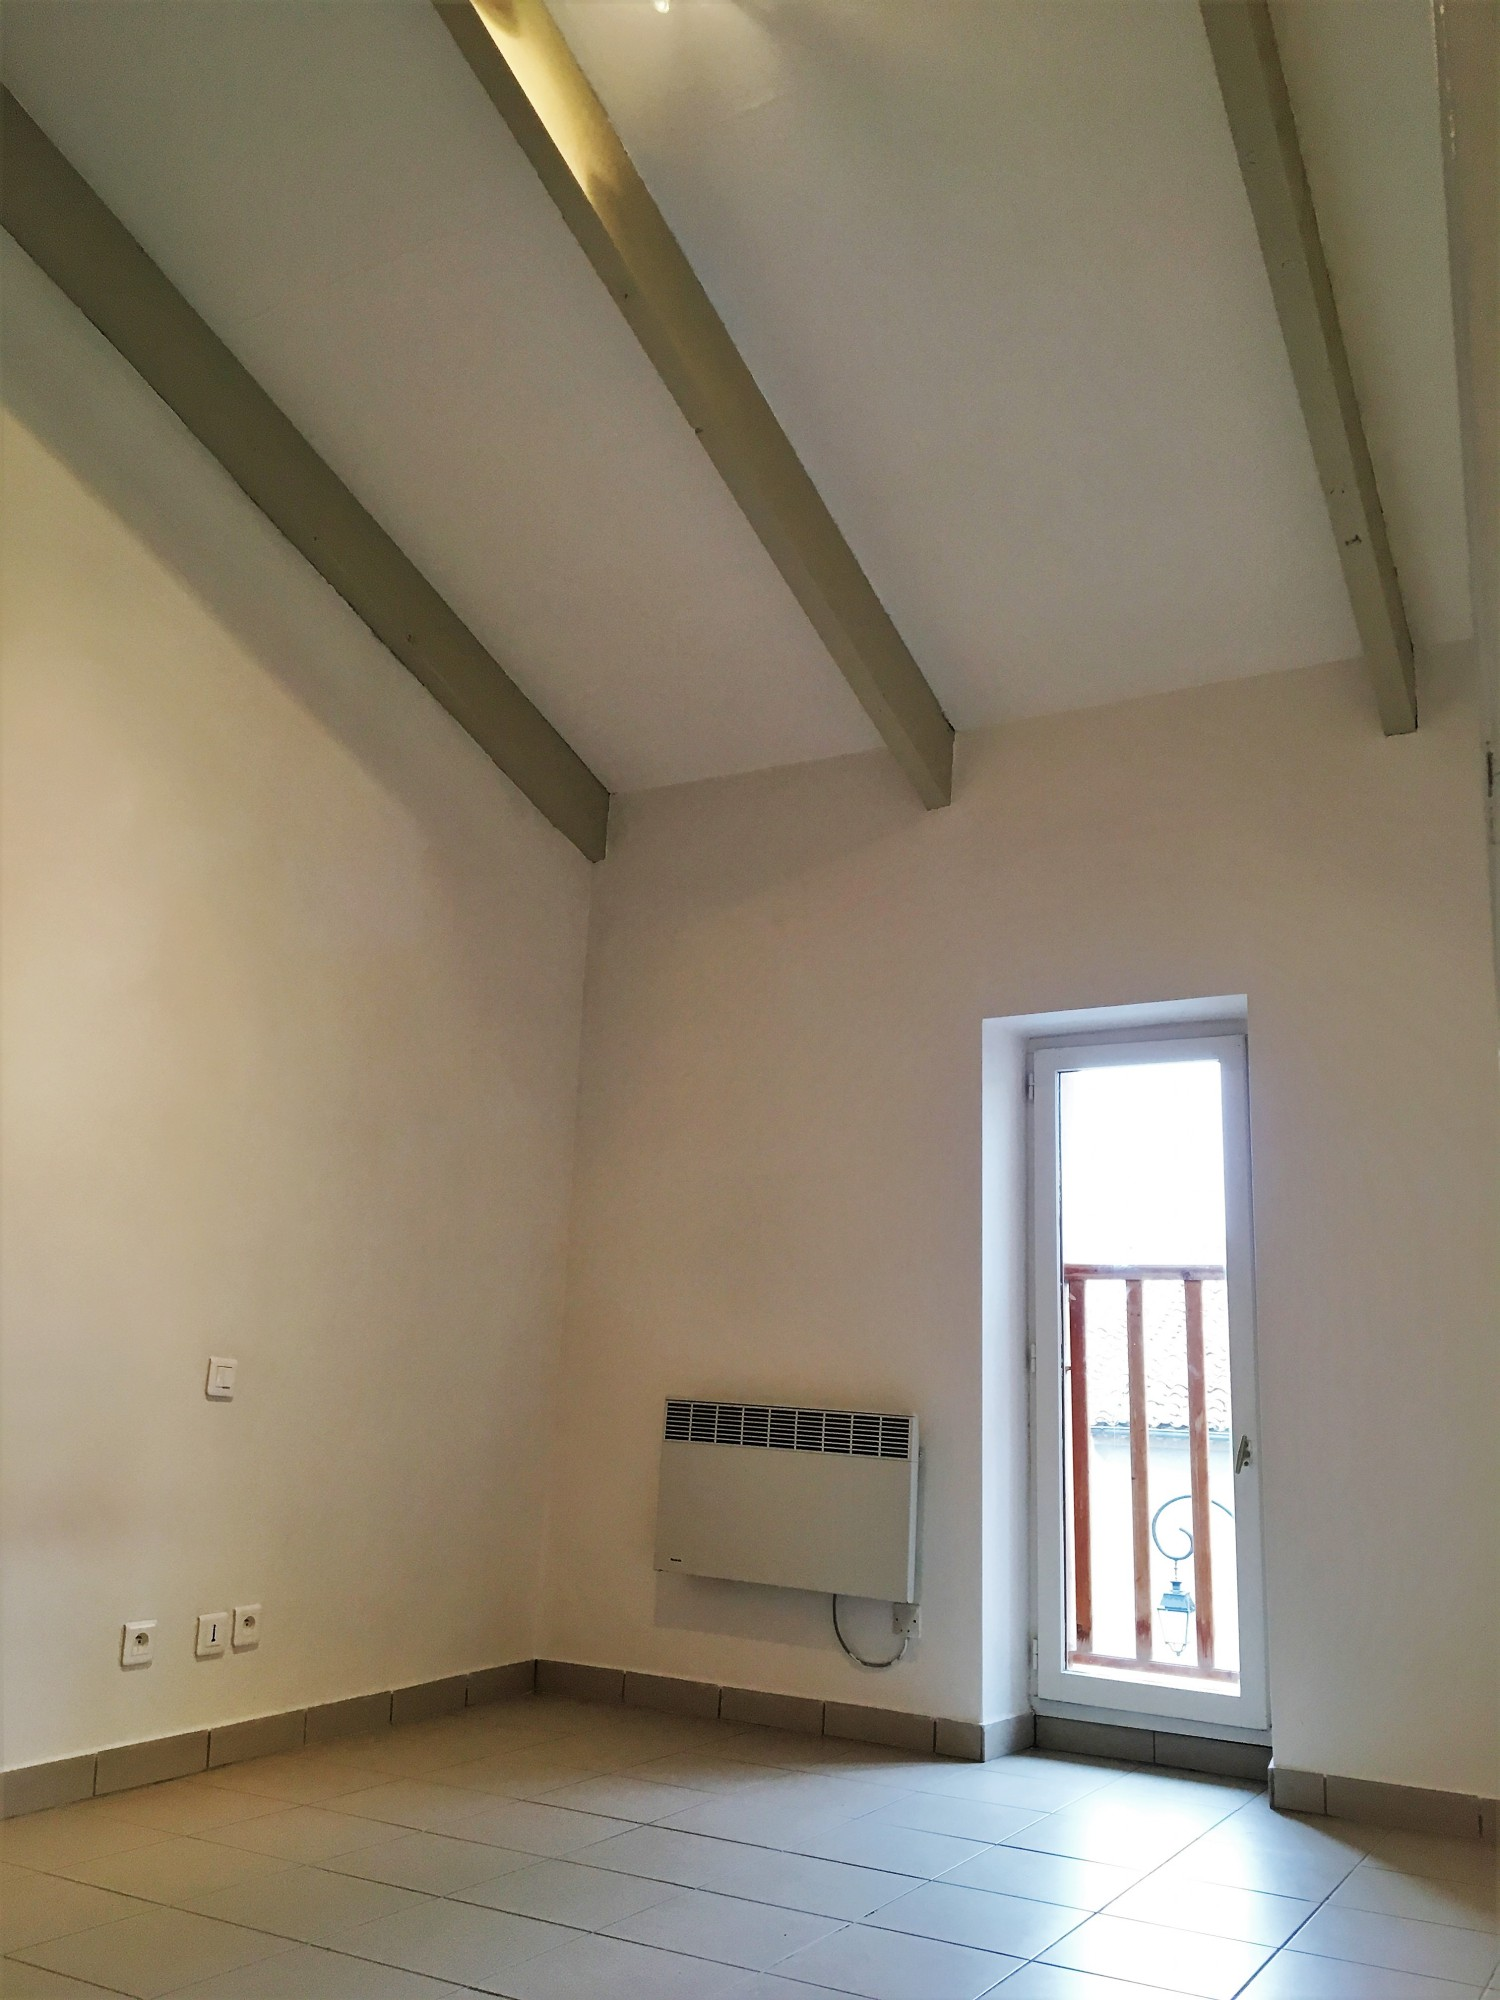 Vente APPARTEMENT  T2 SAINT ZACHARIE Appartement T2 44m² + mezzanine